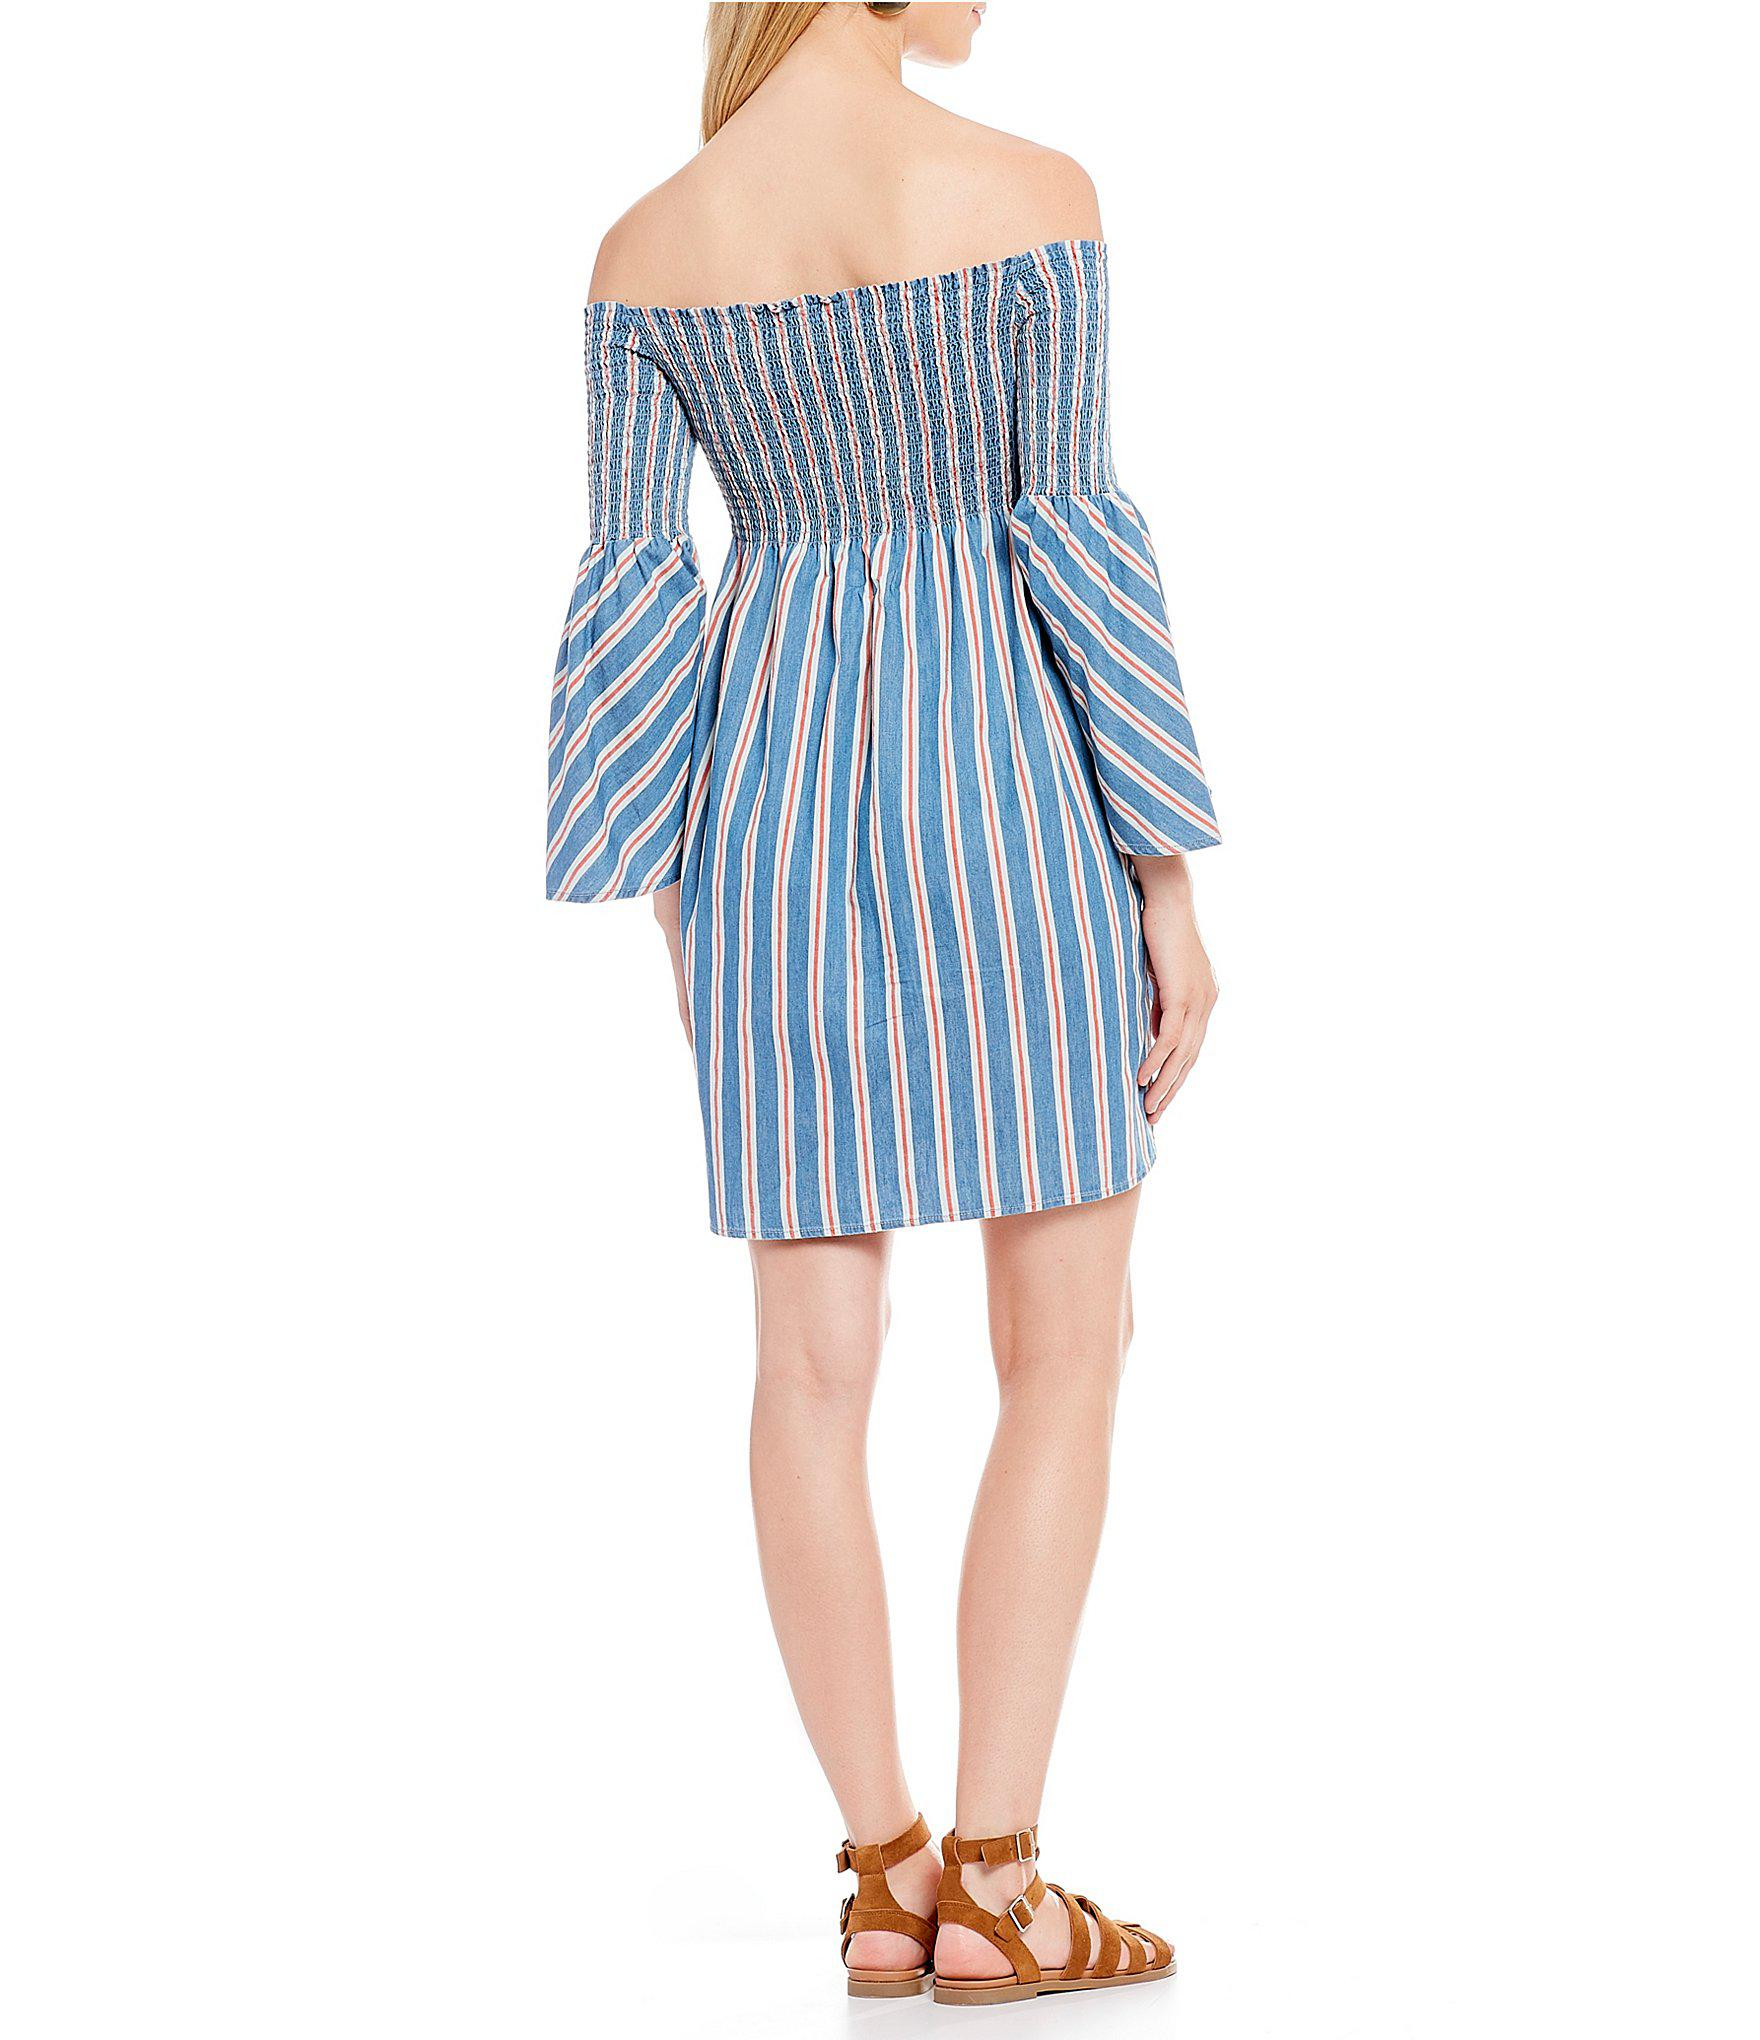 bf11d53750f Gallery. Previously sold at  Dillard s · Women s Off The Shoulder Dresses